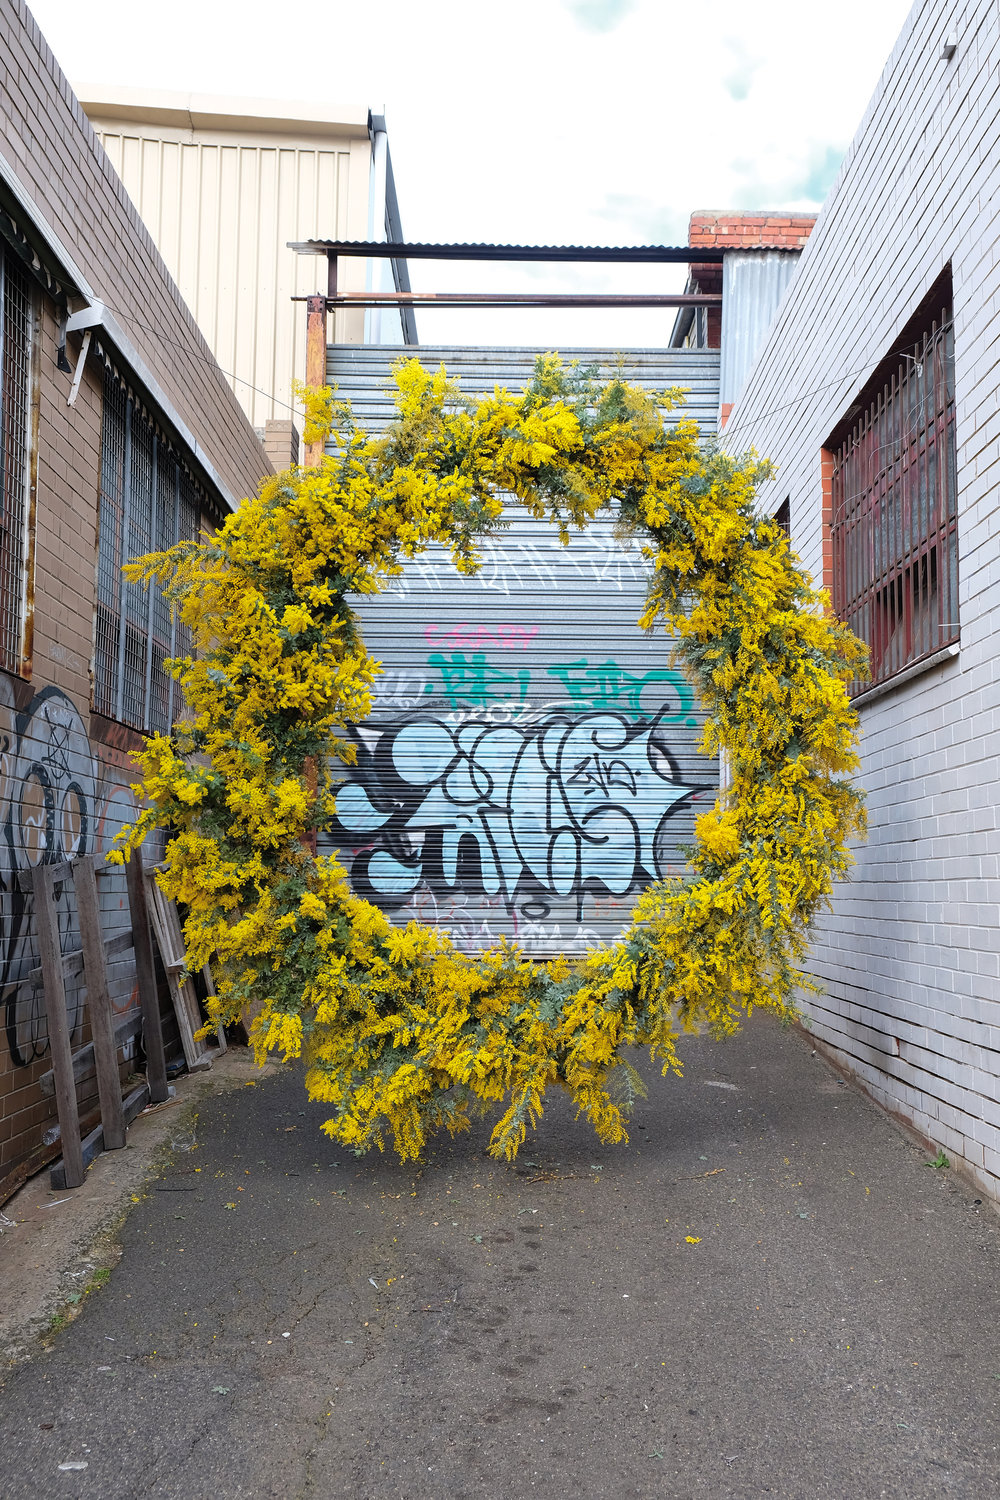 Loose Leaf_Hover Wreath_Wattle_Melbourne_2017.jpg